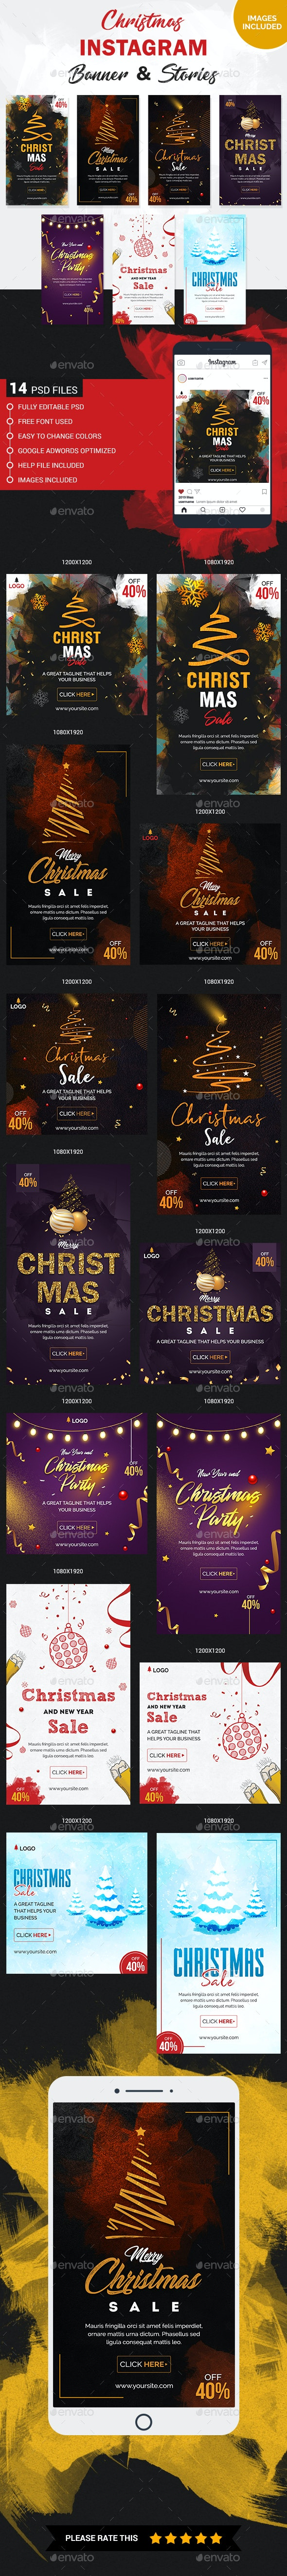 Christmas Instagram Story and Banner Templates - Social Media Web Elements